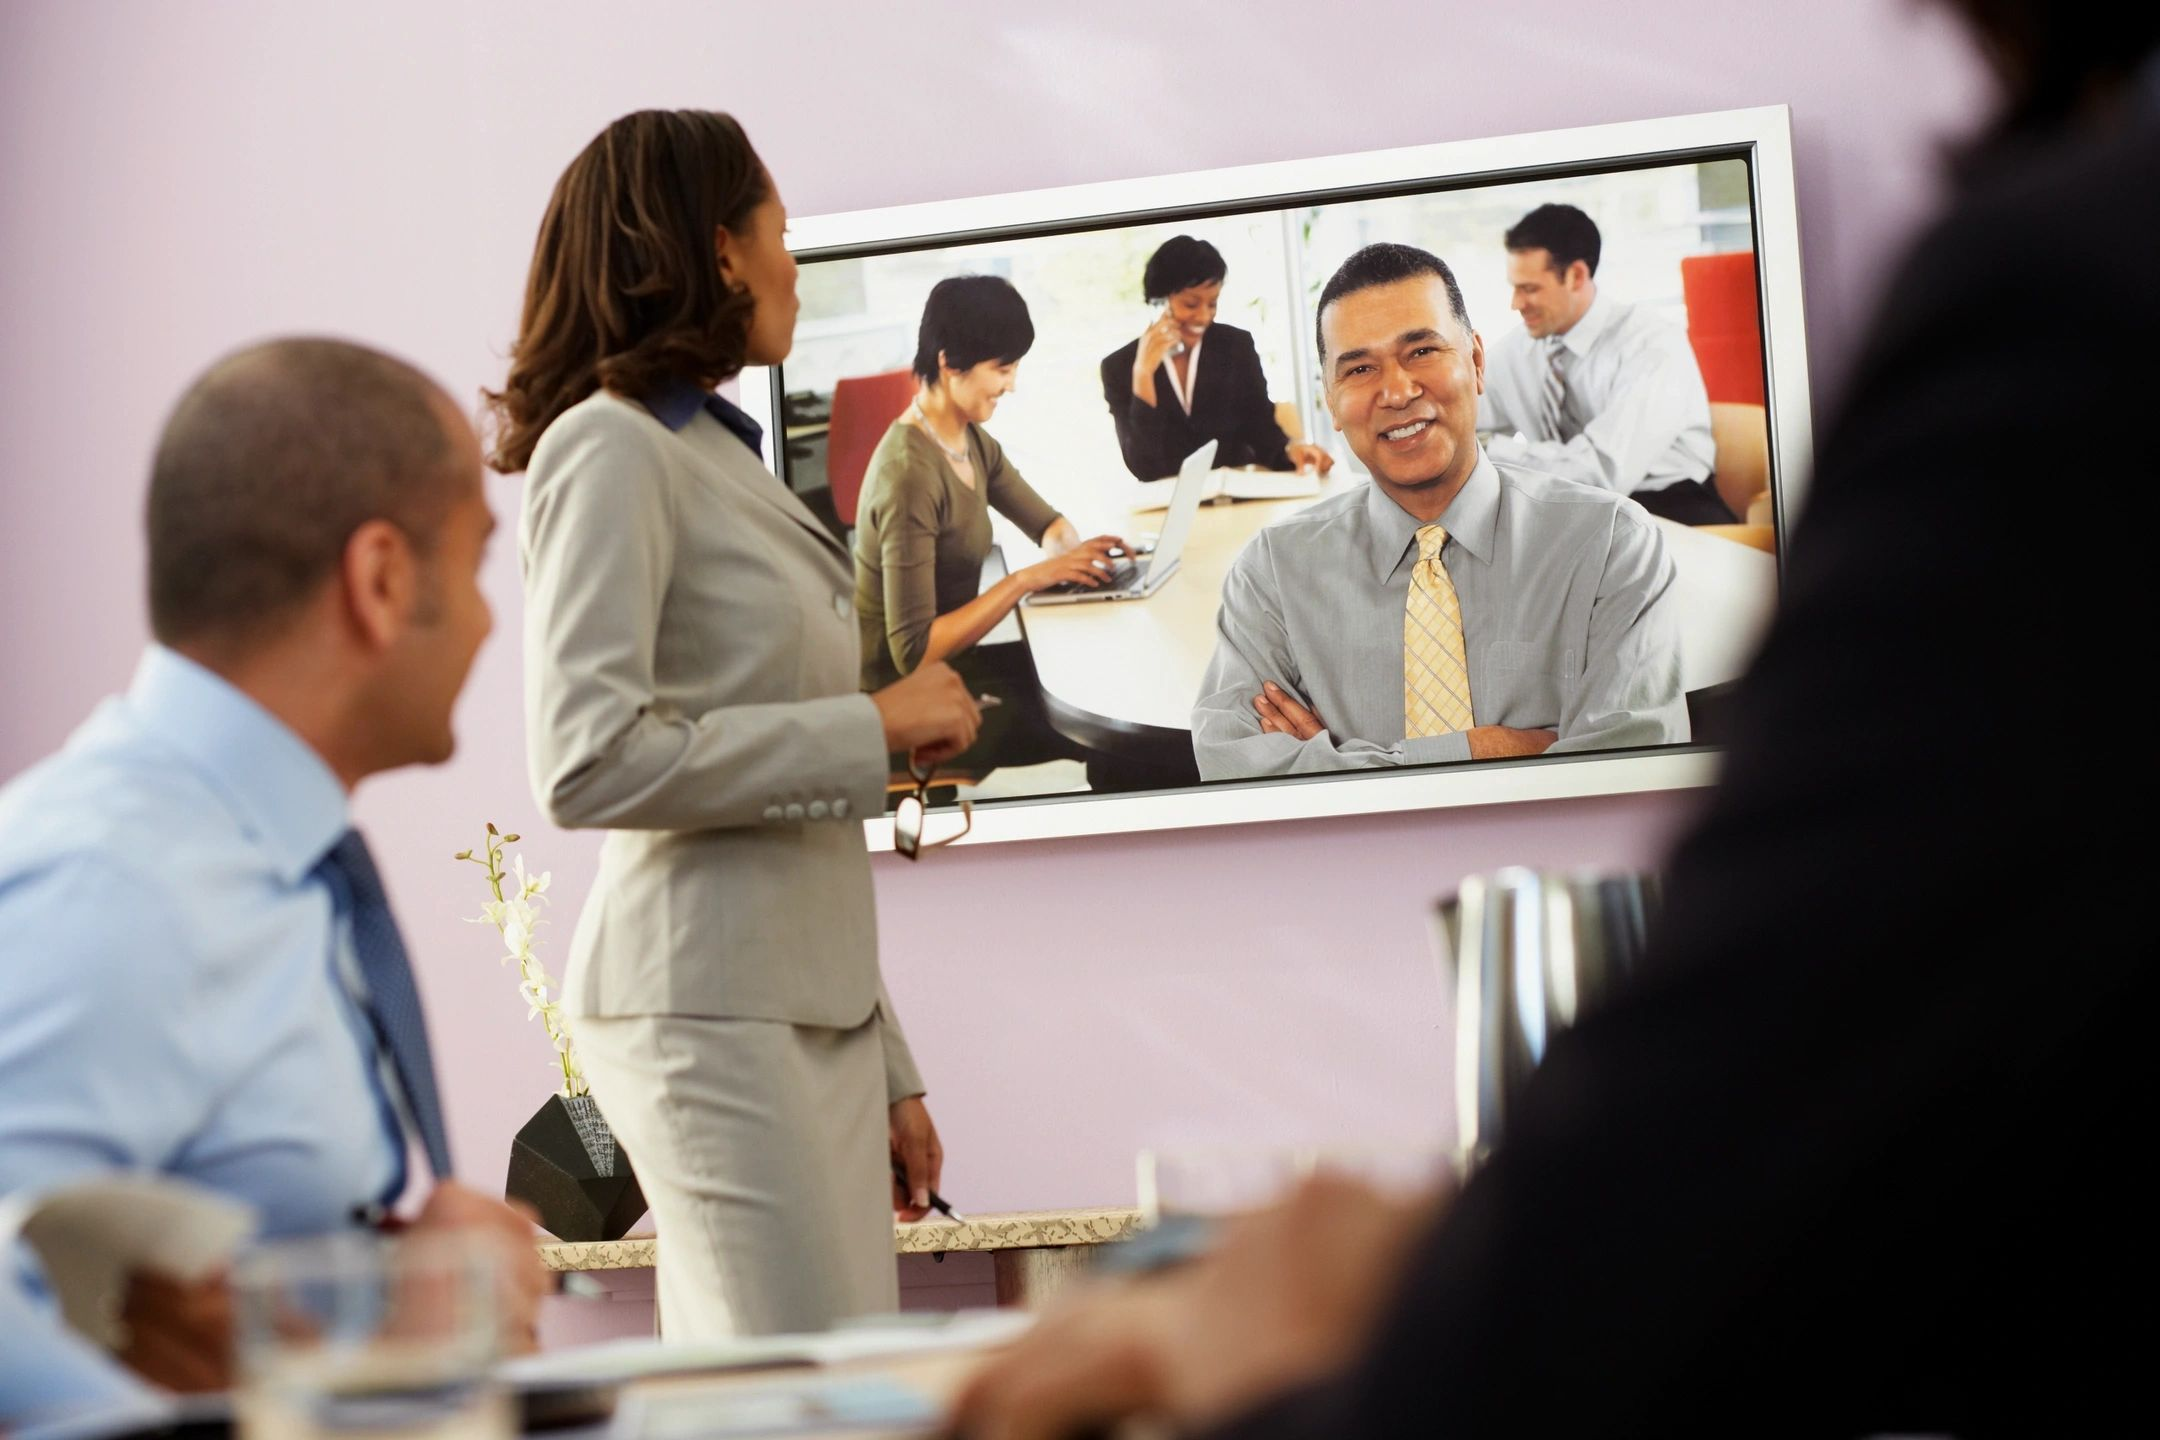 Image of three people on video conference call over the internet having a meeting. Video is displayed on TV. Four business people on opposite end of call smiling.